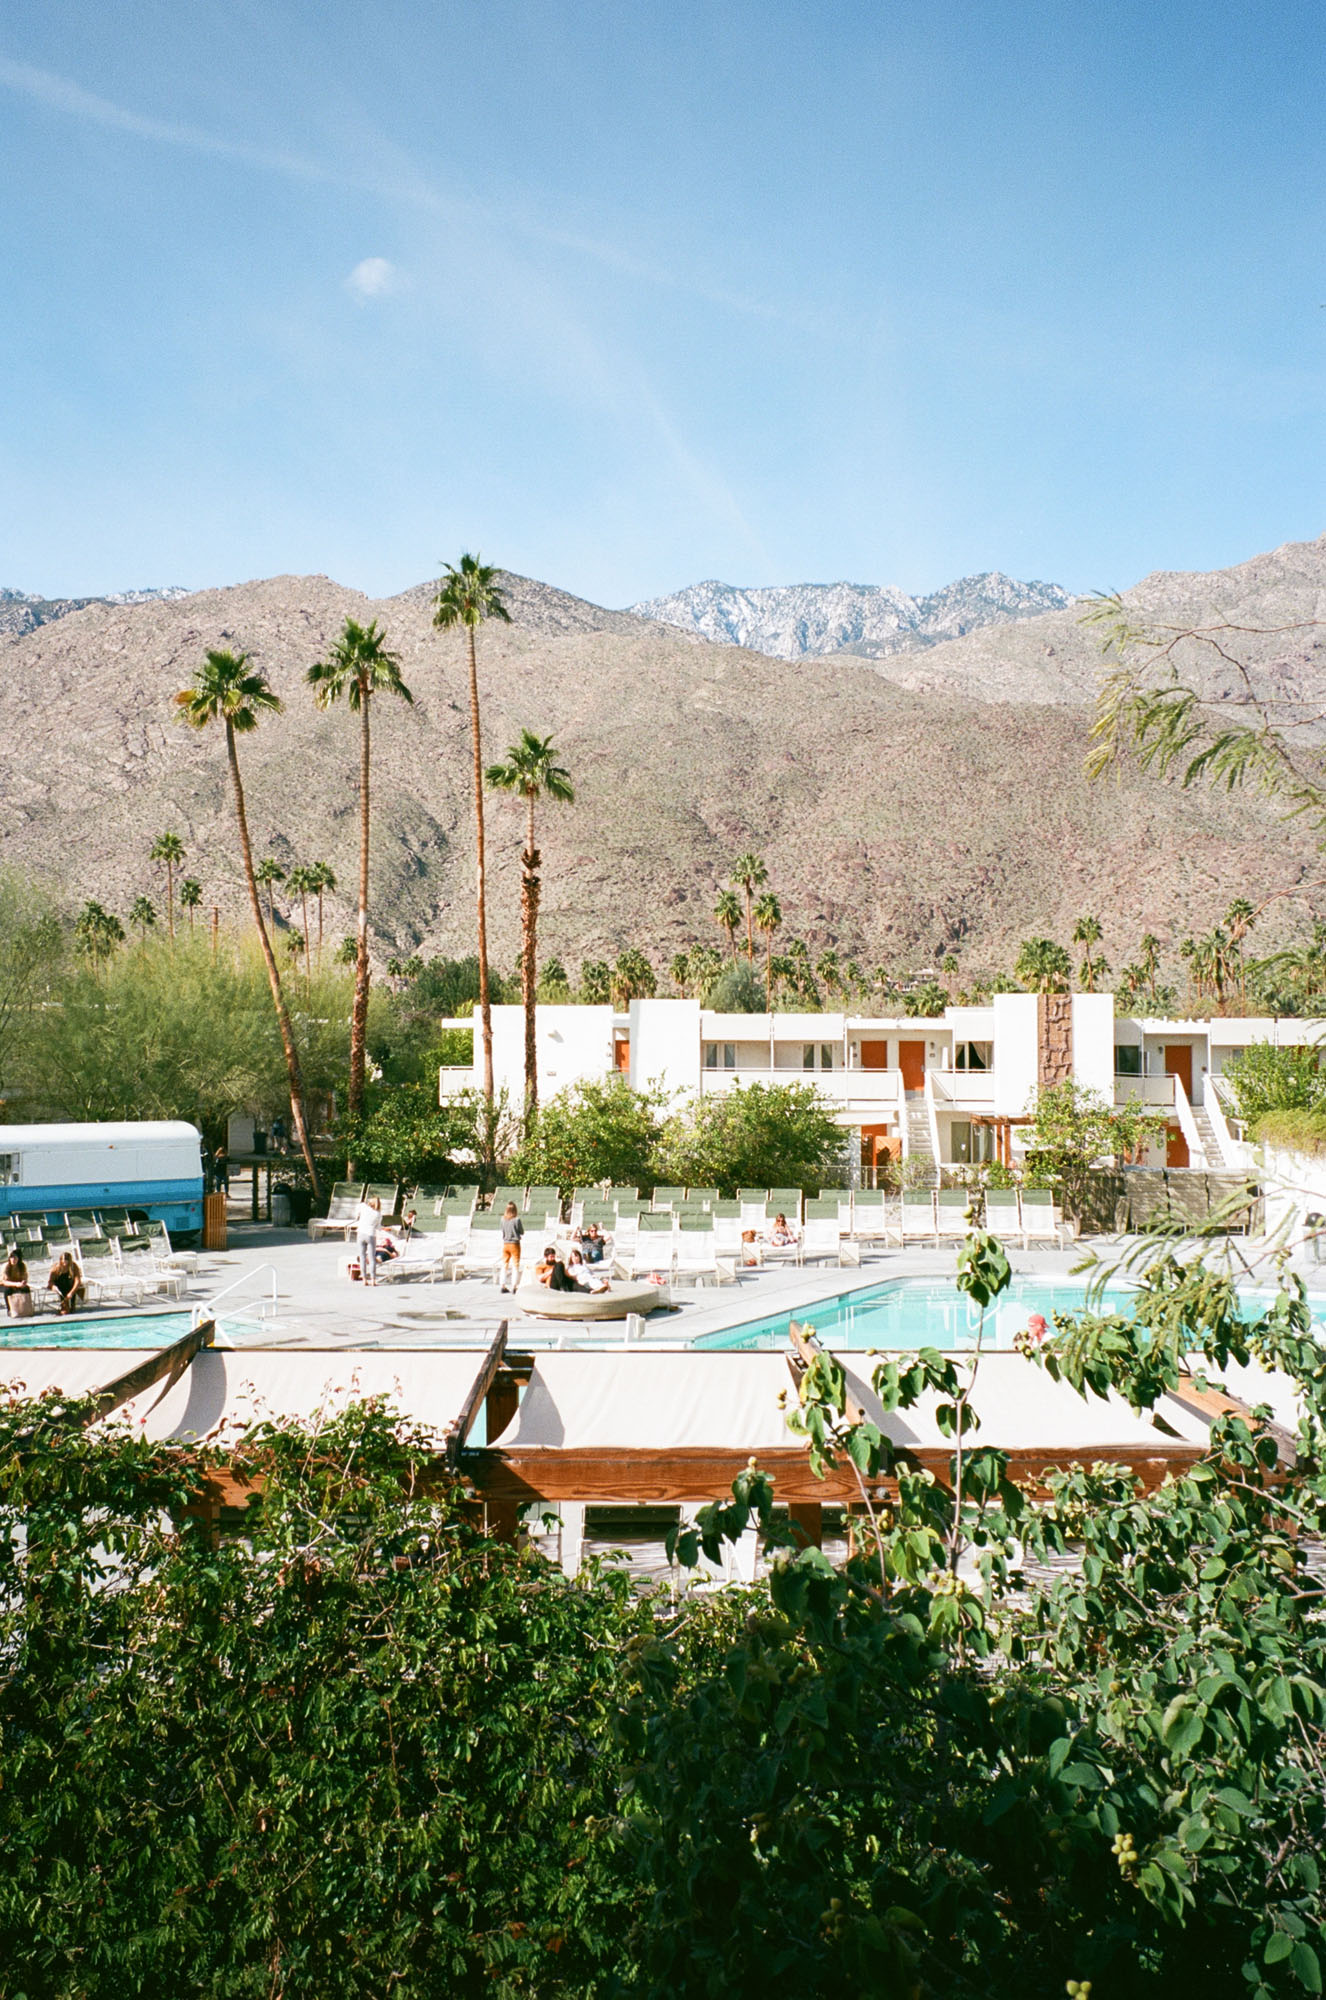 ace-hotel-palm-springs-california-film-photography-travel-photographer-001